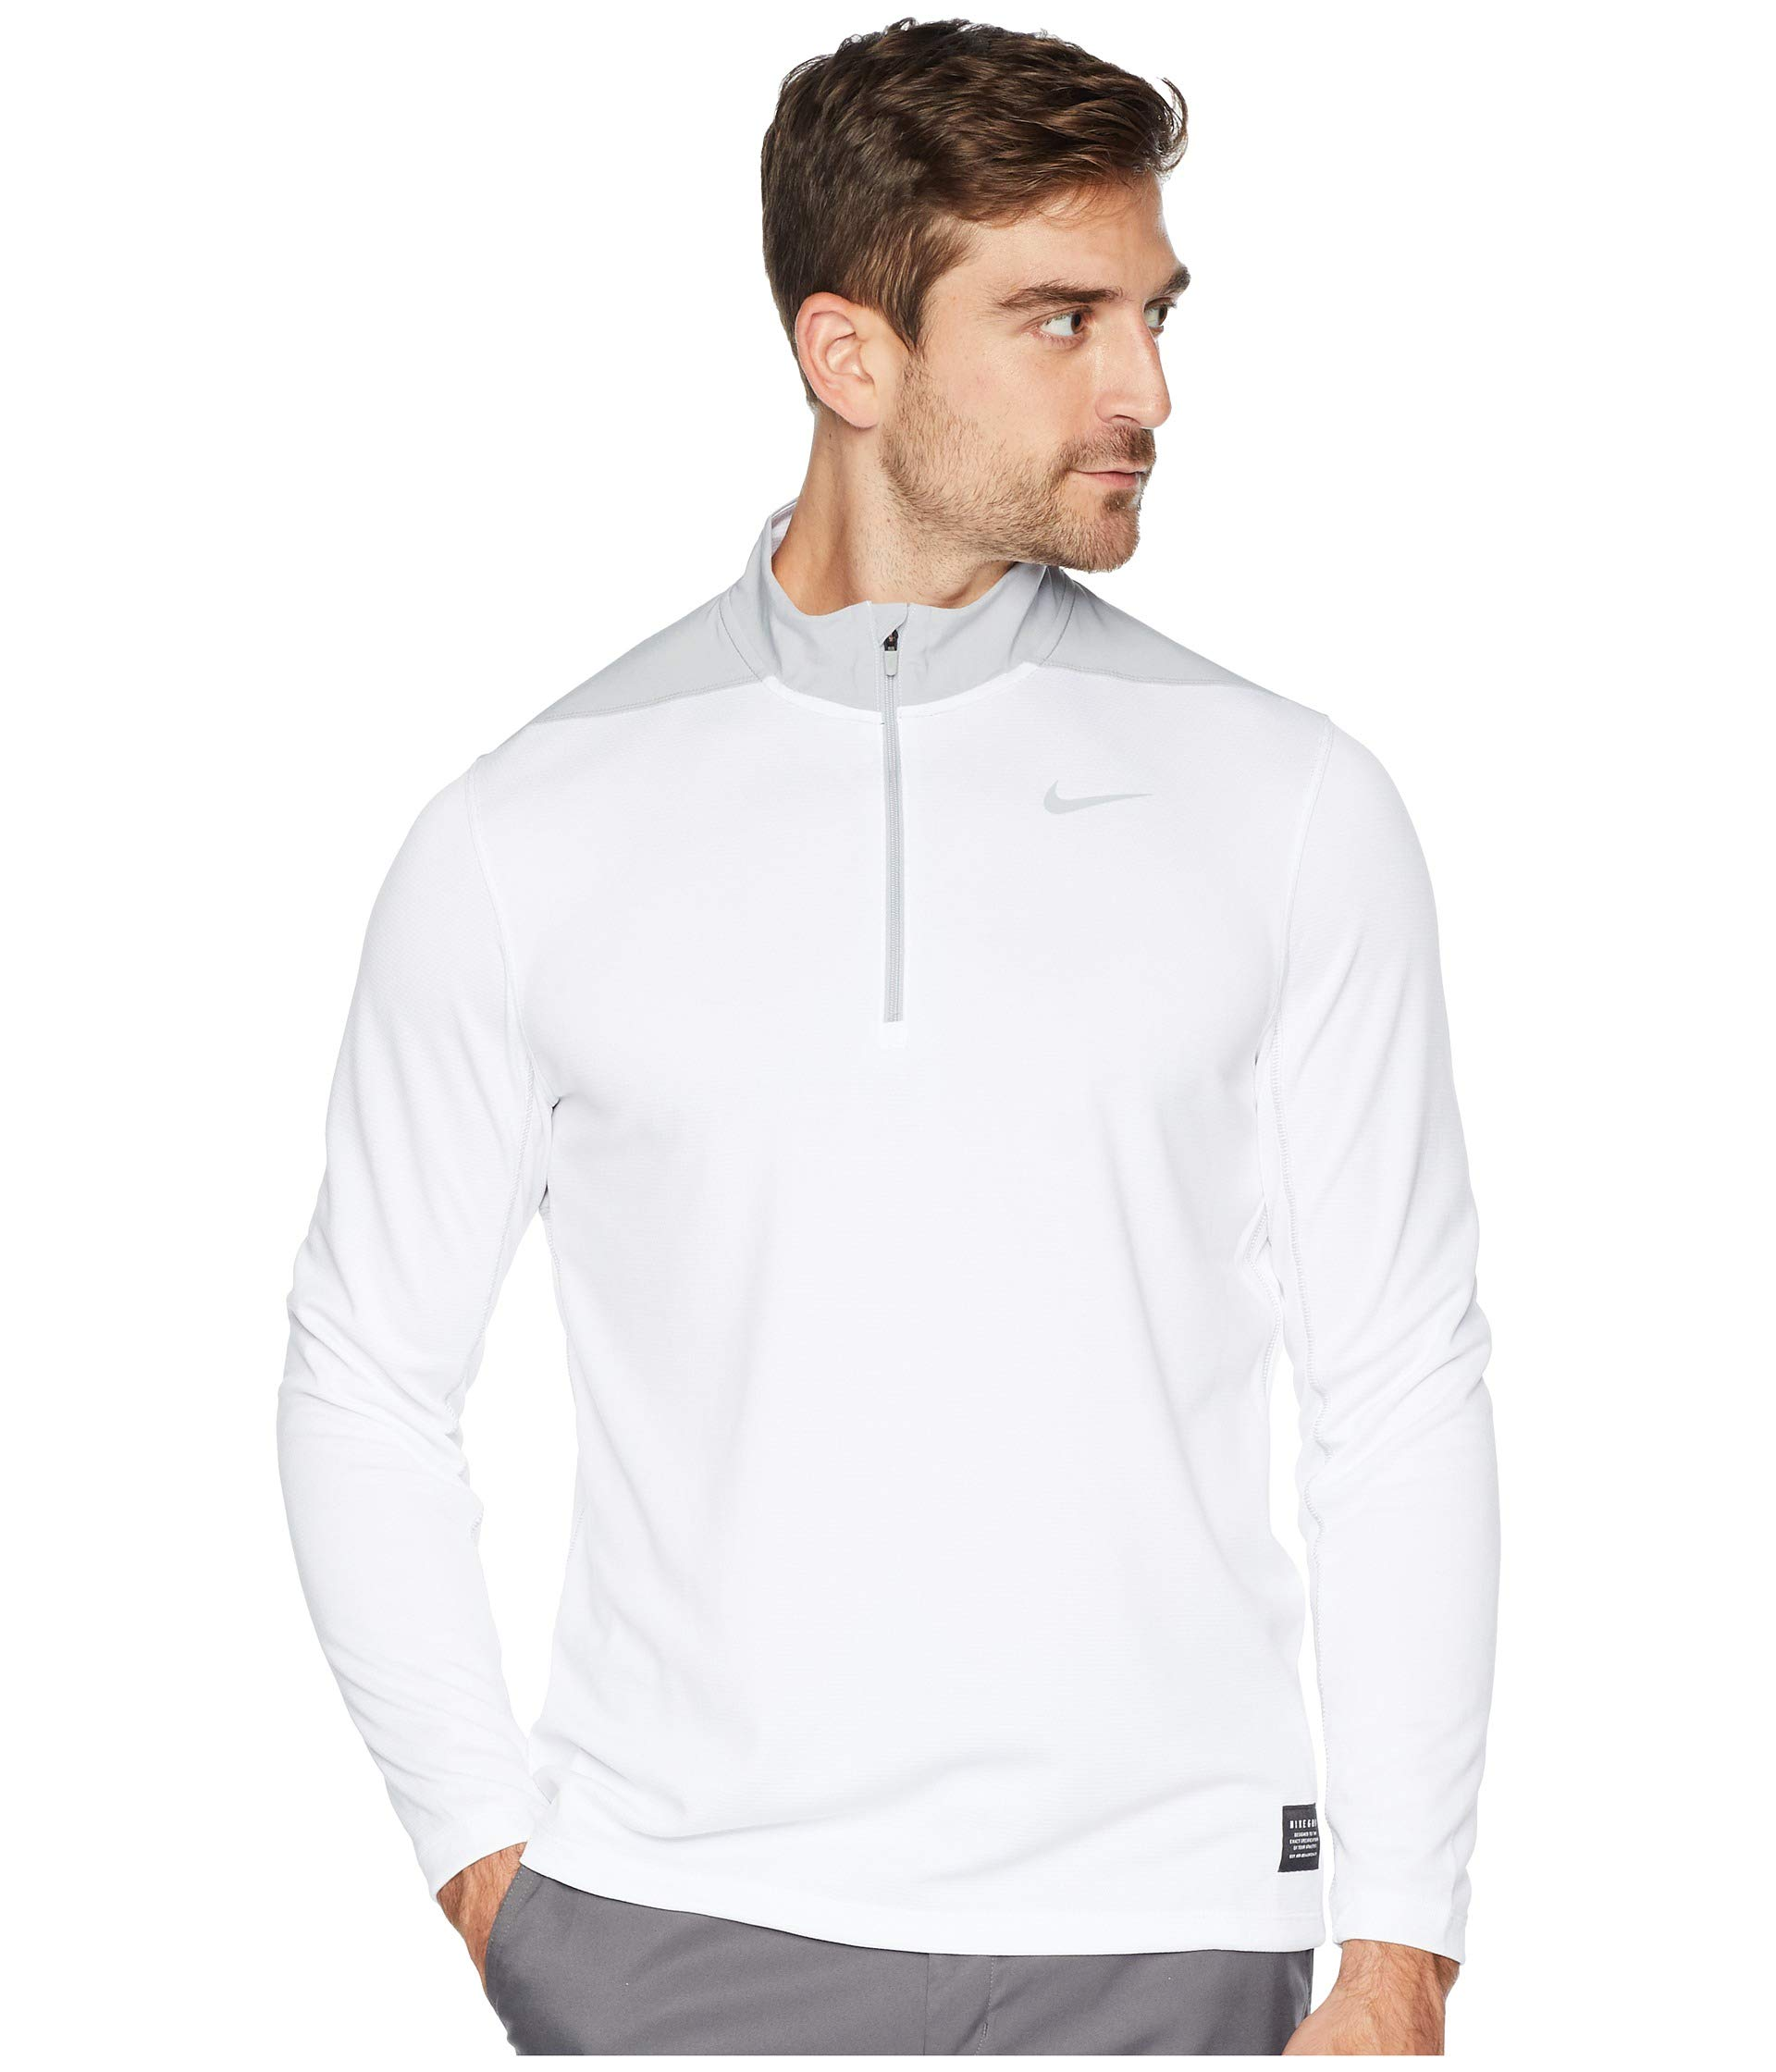 NIKE Men's Dry Top Half Zip core Golf Top (White/Wolf Grey, XXX-Large) by NIKE (Image #5)